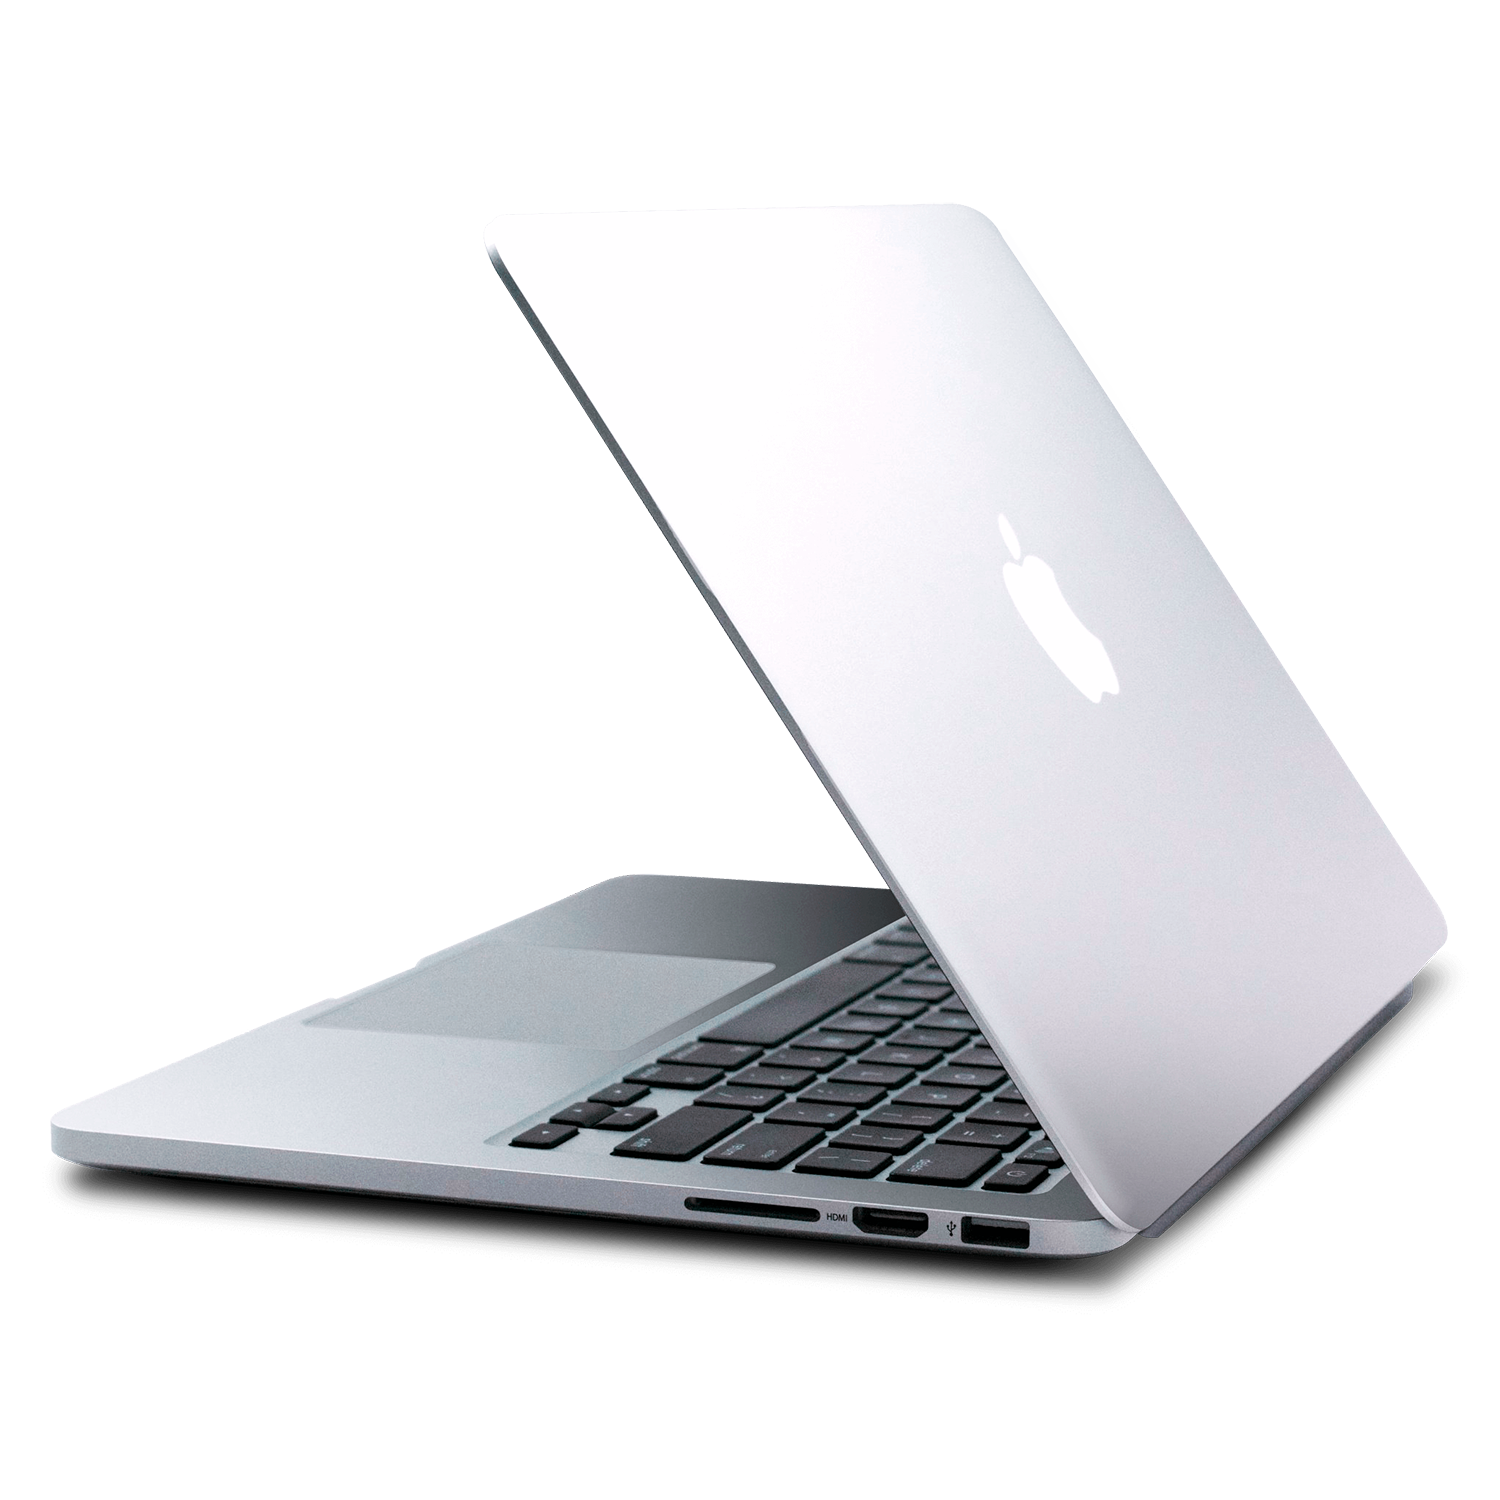 clipart library download Apple pro retina skins. Macbook transparent.